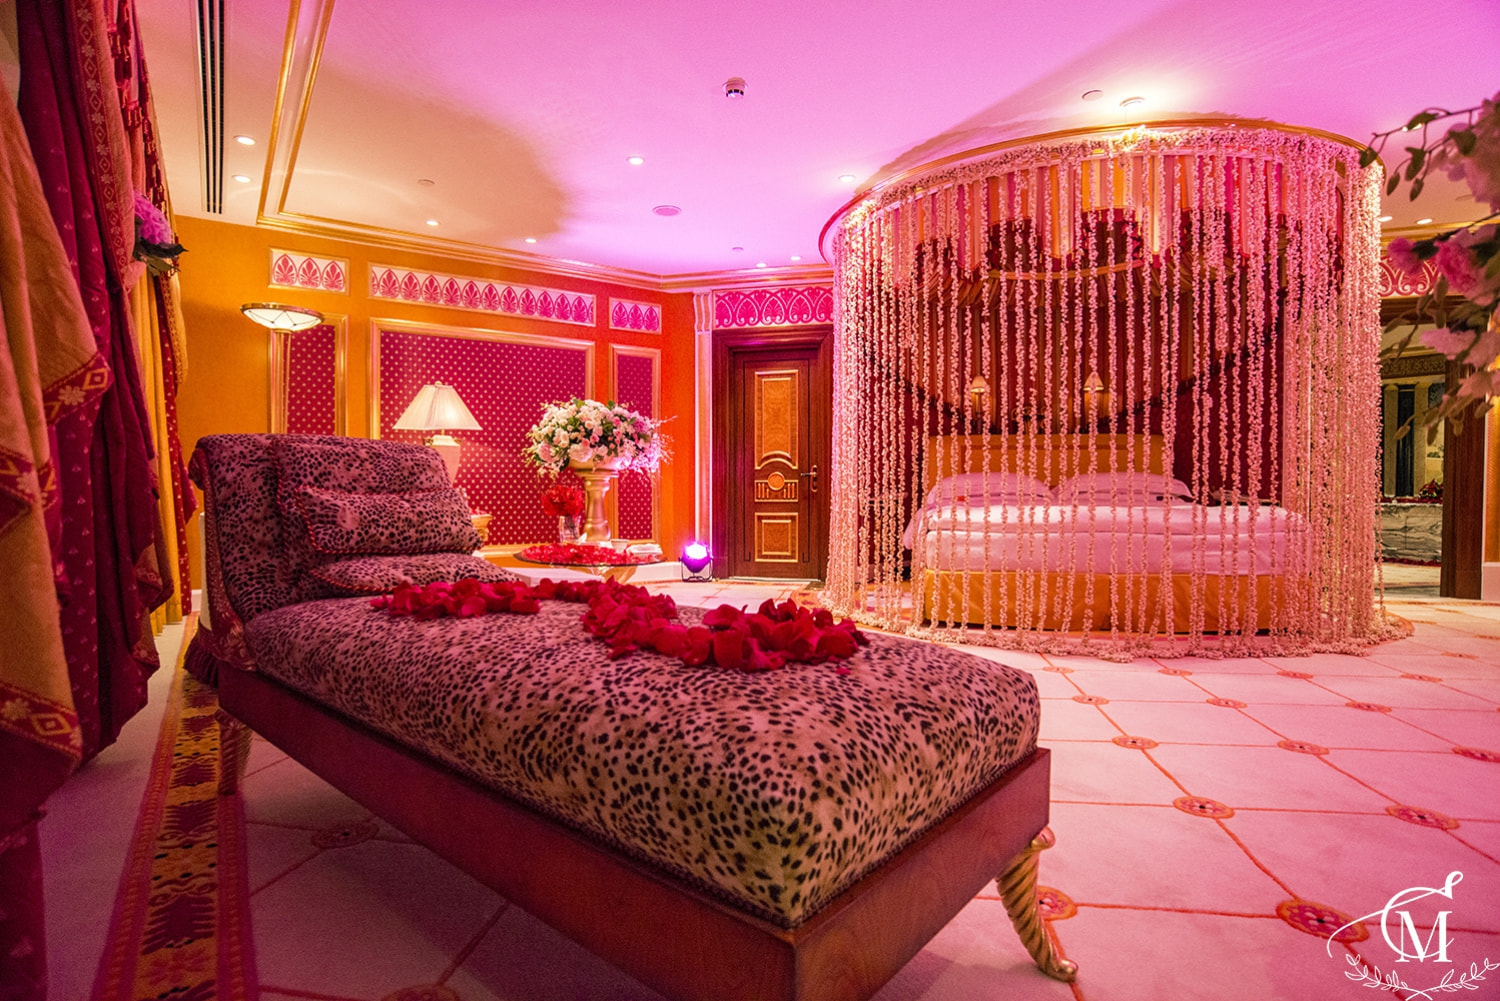 Royal Suite Room In Burj Al Arab Was Decorated With Light Amazing Flowers  And Of Course A Lot Of Gifts.